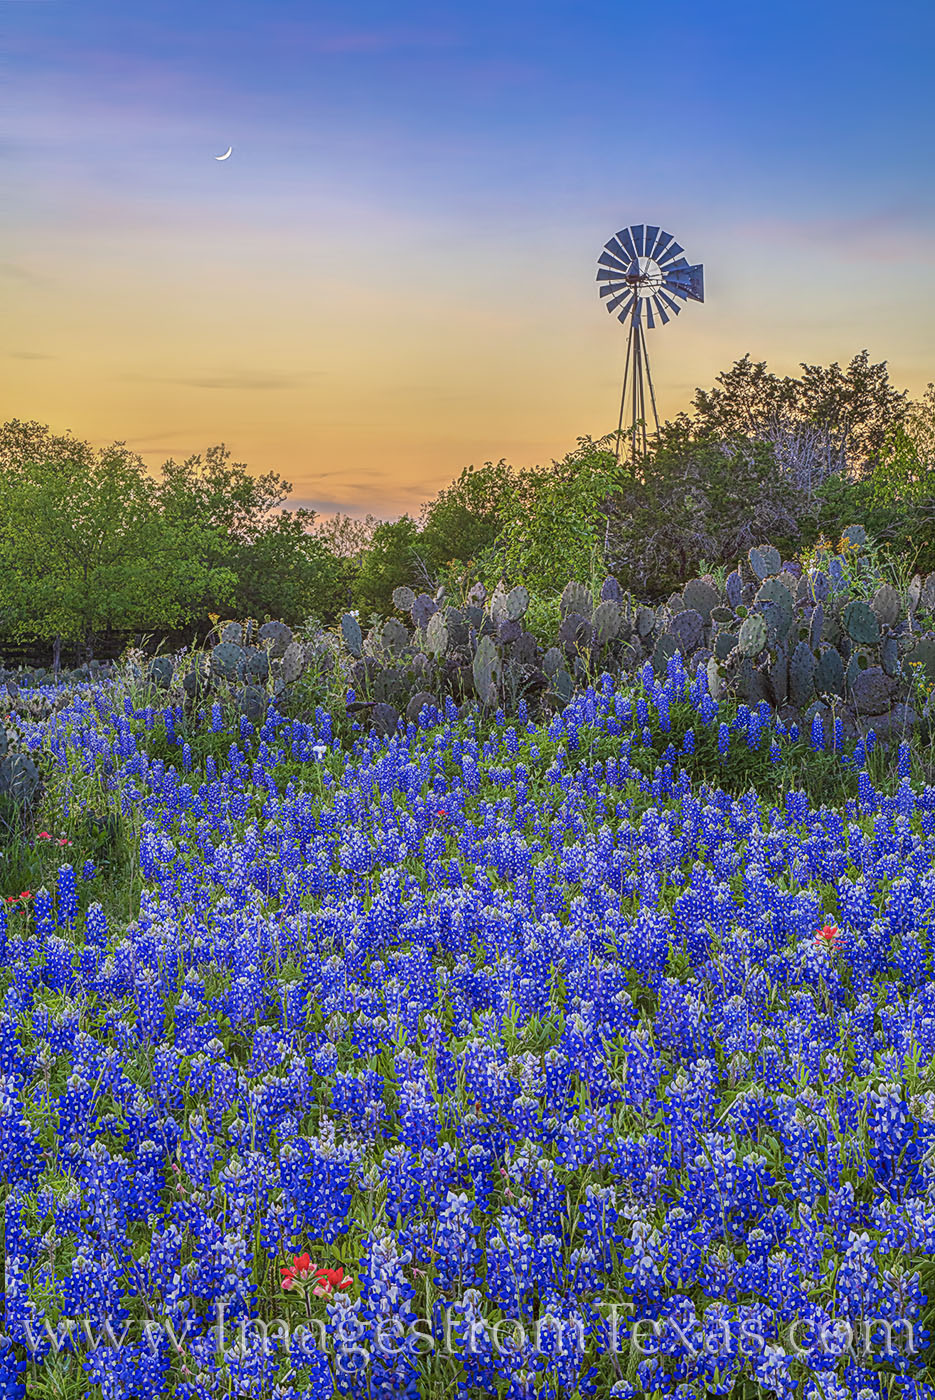 bluebonnets, bluebonnet roads, texas hill country, bluebonnet roads, backroads, exploring, green, escape, blanco county, johnson city, photo